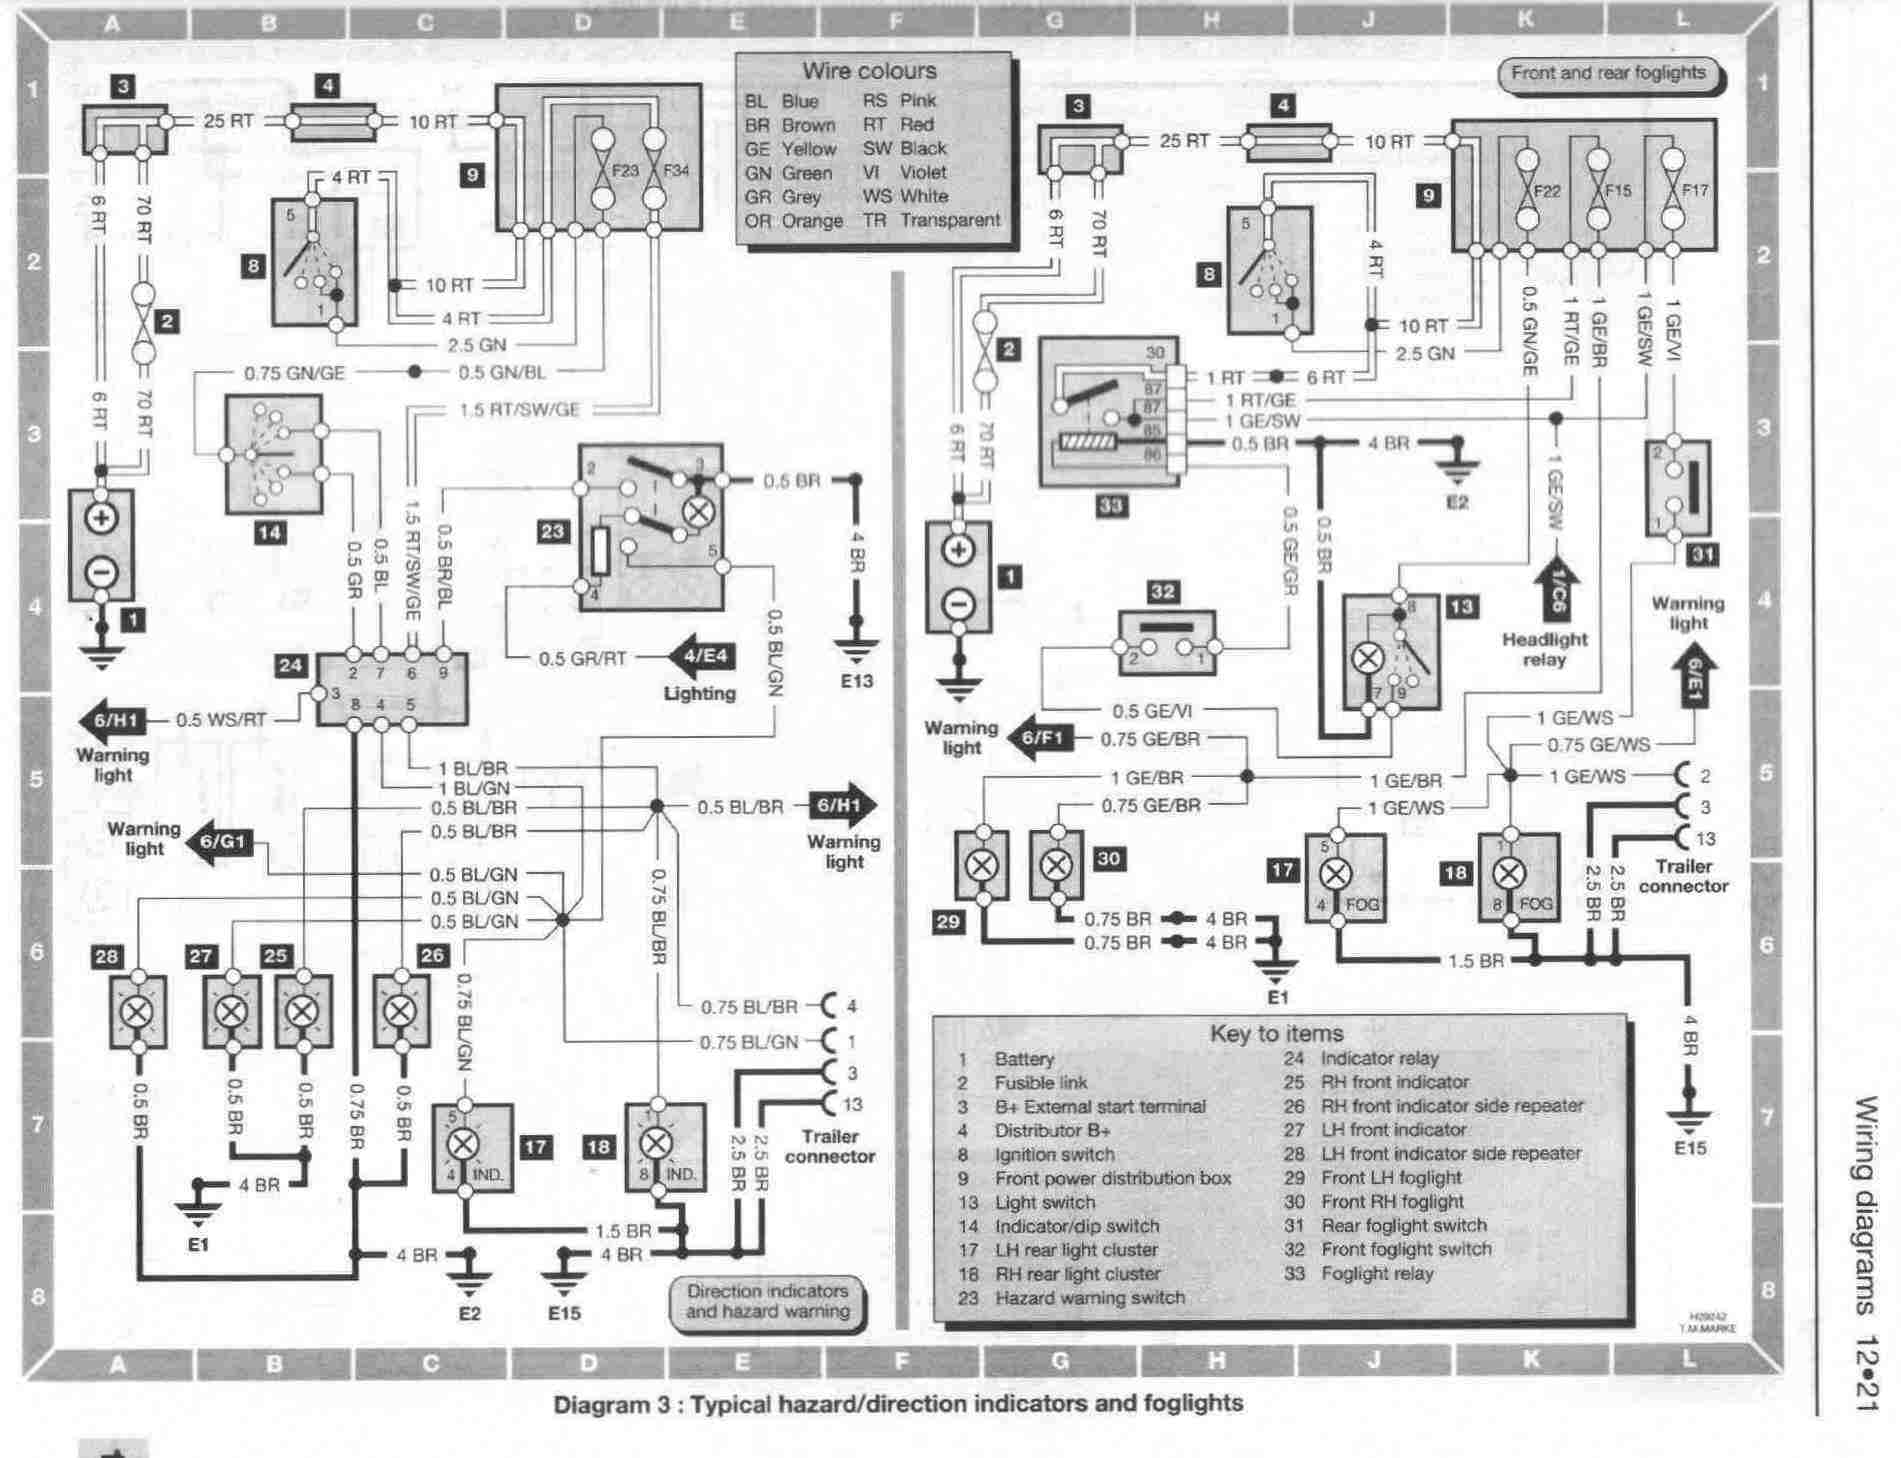 foglamp wiring wiring diagram for international 656 the wiring diagram ih wiring diagrams at sewacar.co